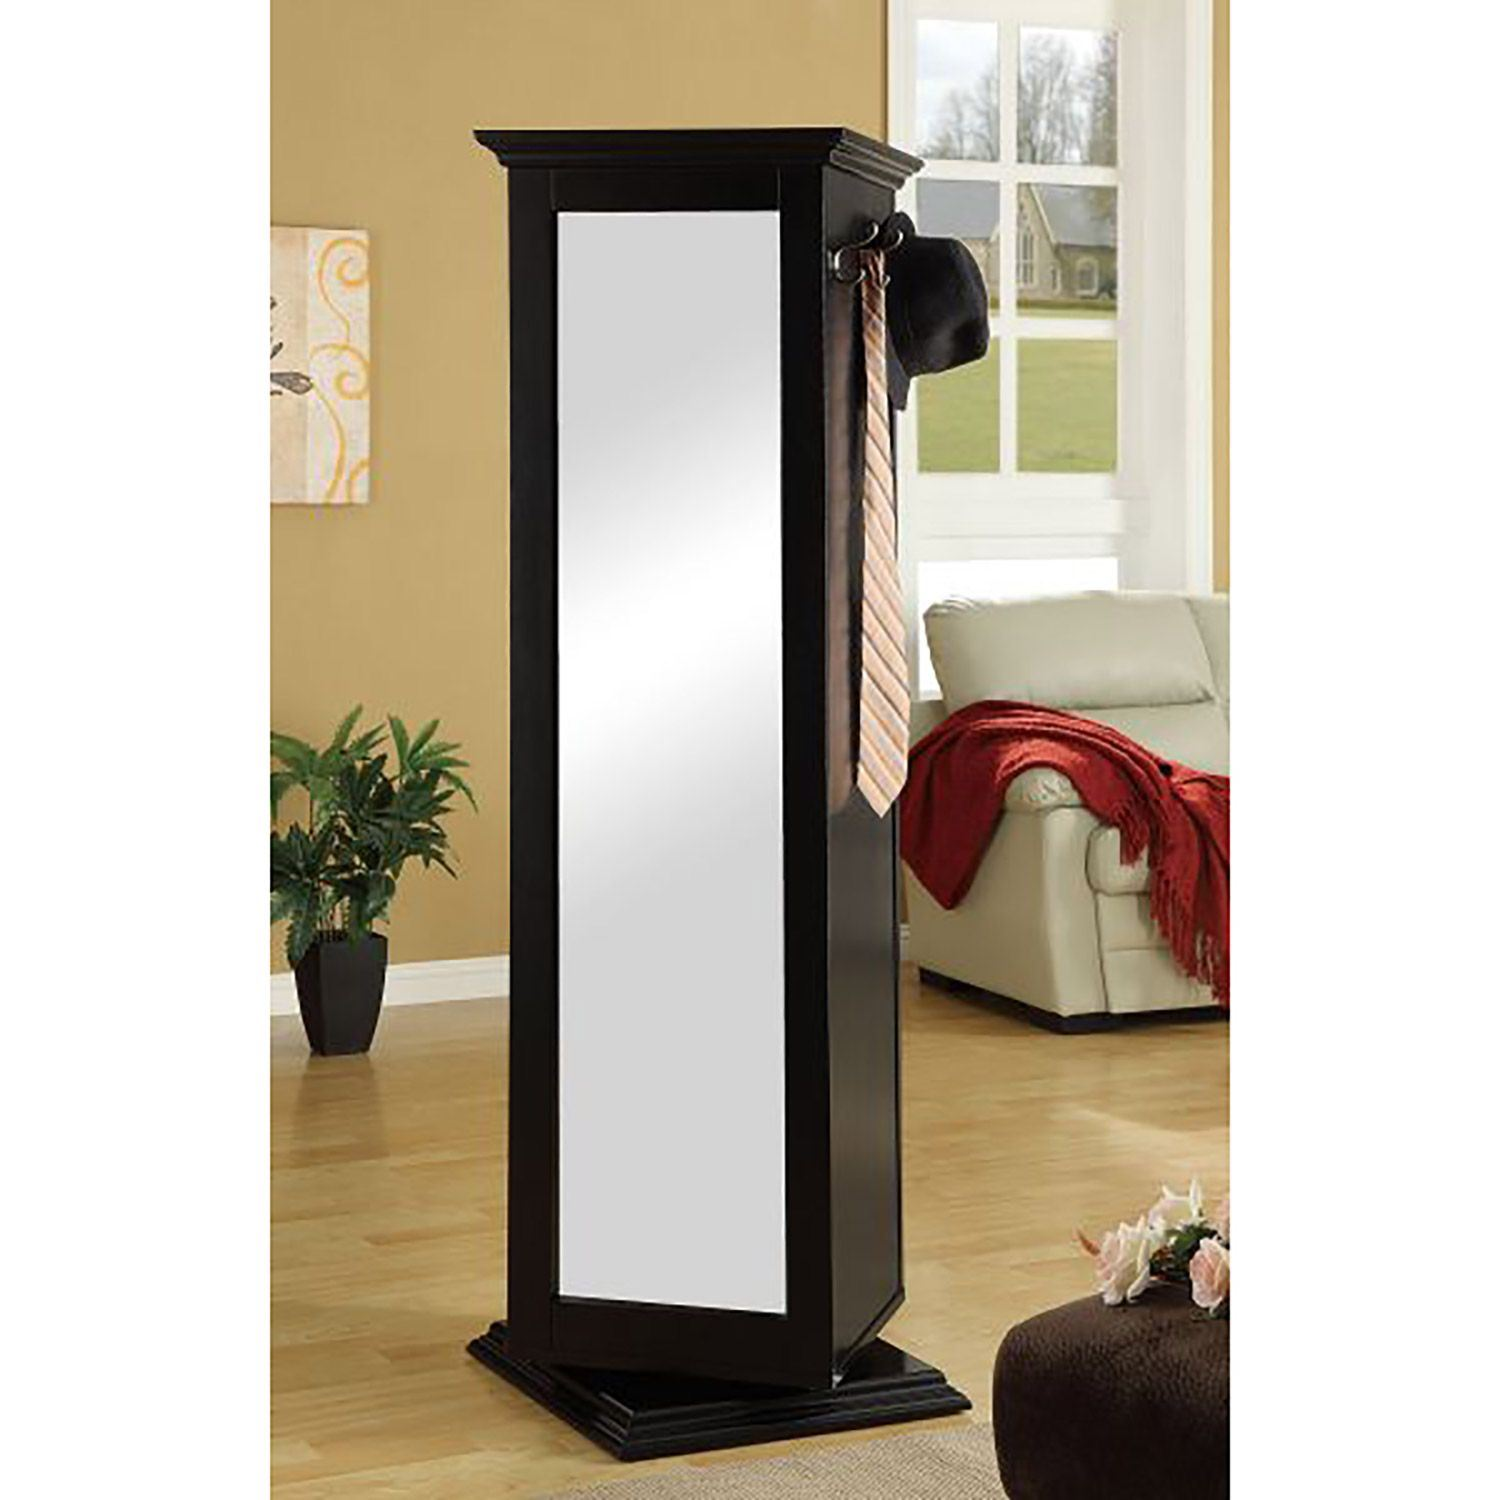 Picture of Swivel Cabinet, Black *D